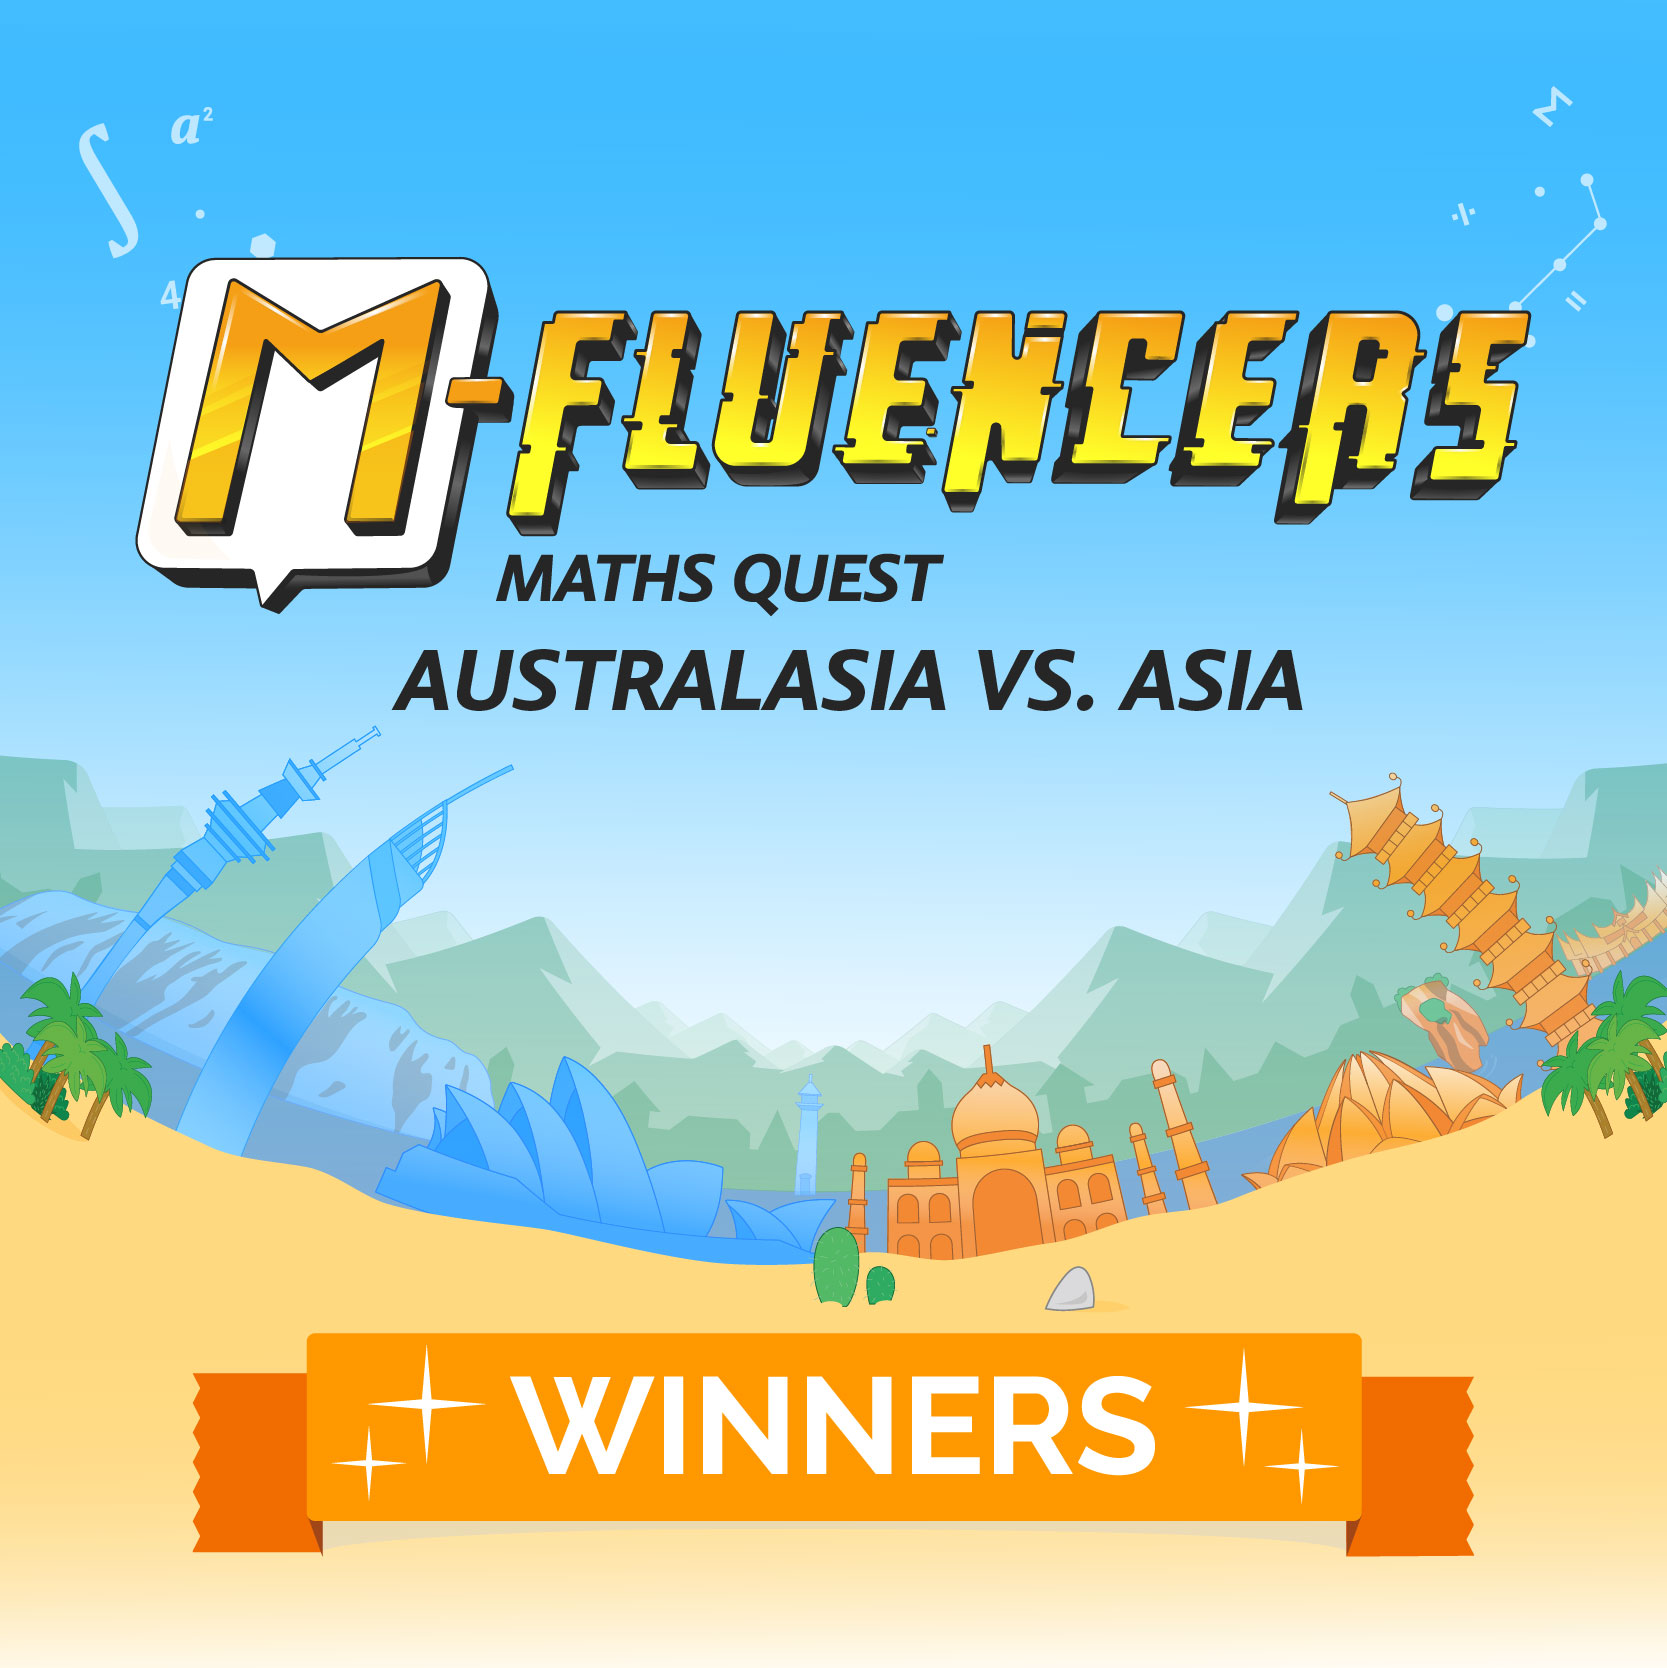 M-Fluencers Australasia vs Asia – Who Came Out on Top?